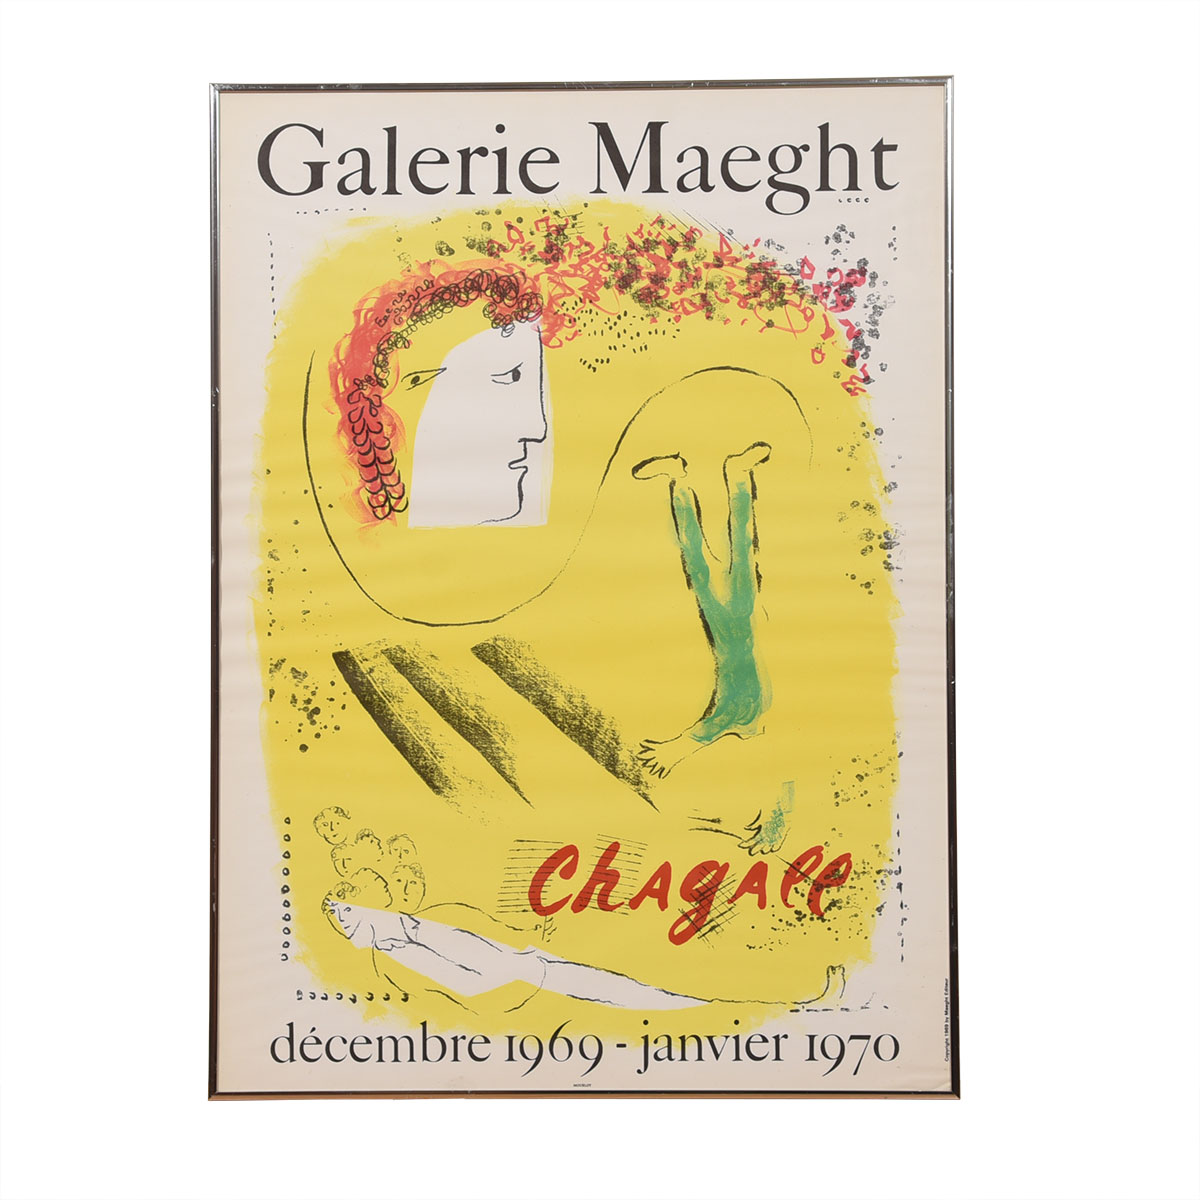 Galerie Maeght Chagall Exhibition Poster